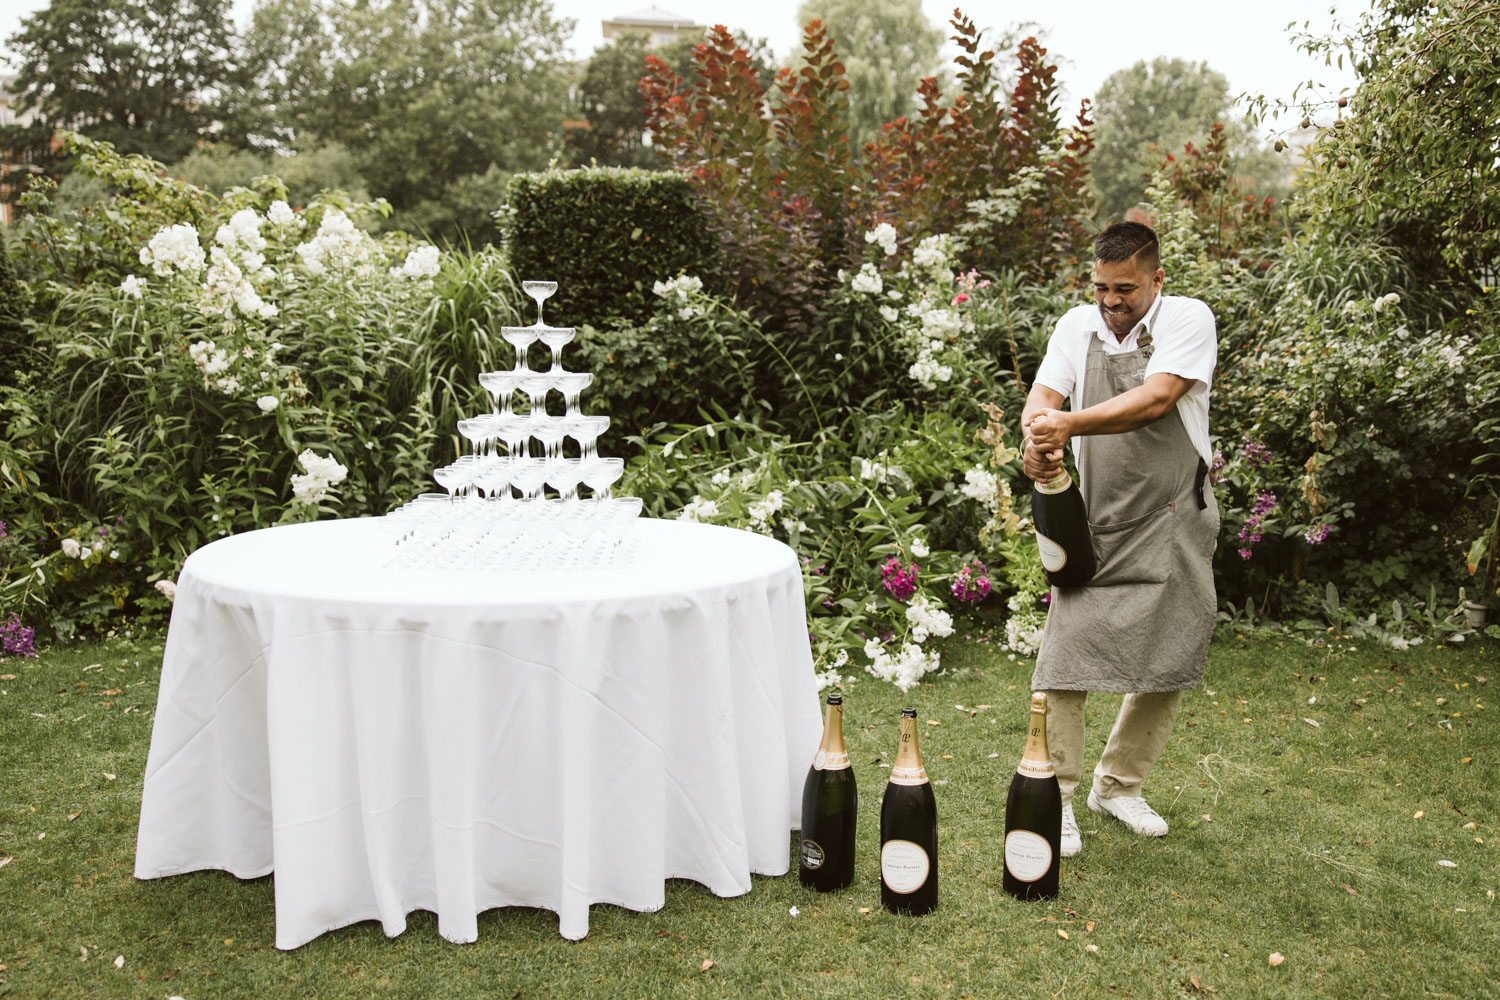 Waiter setting up champagne fountain